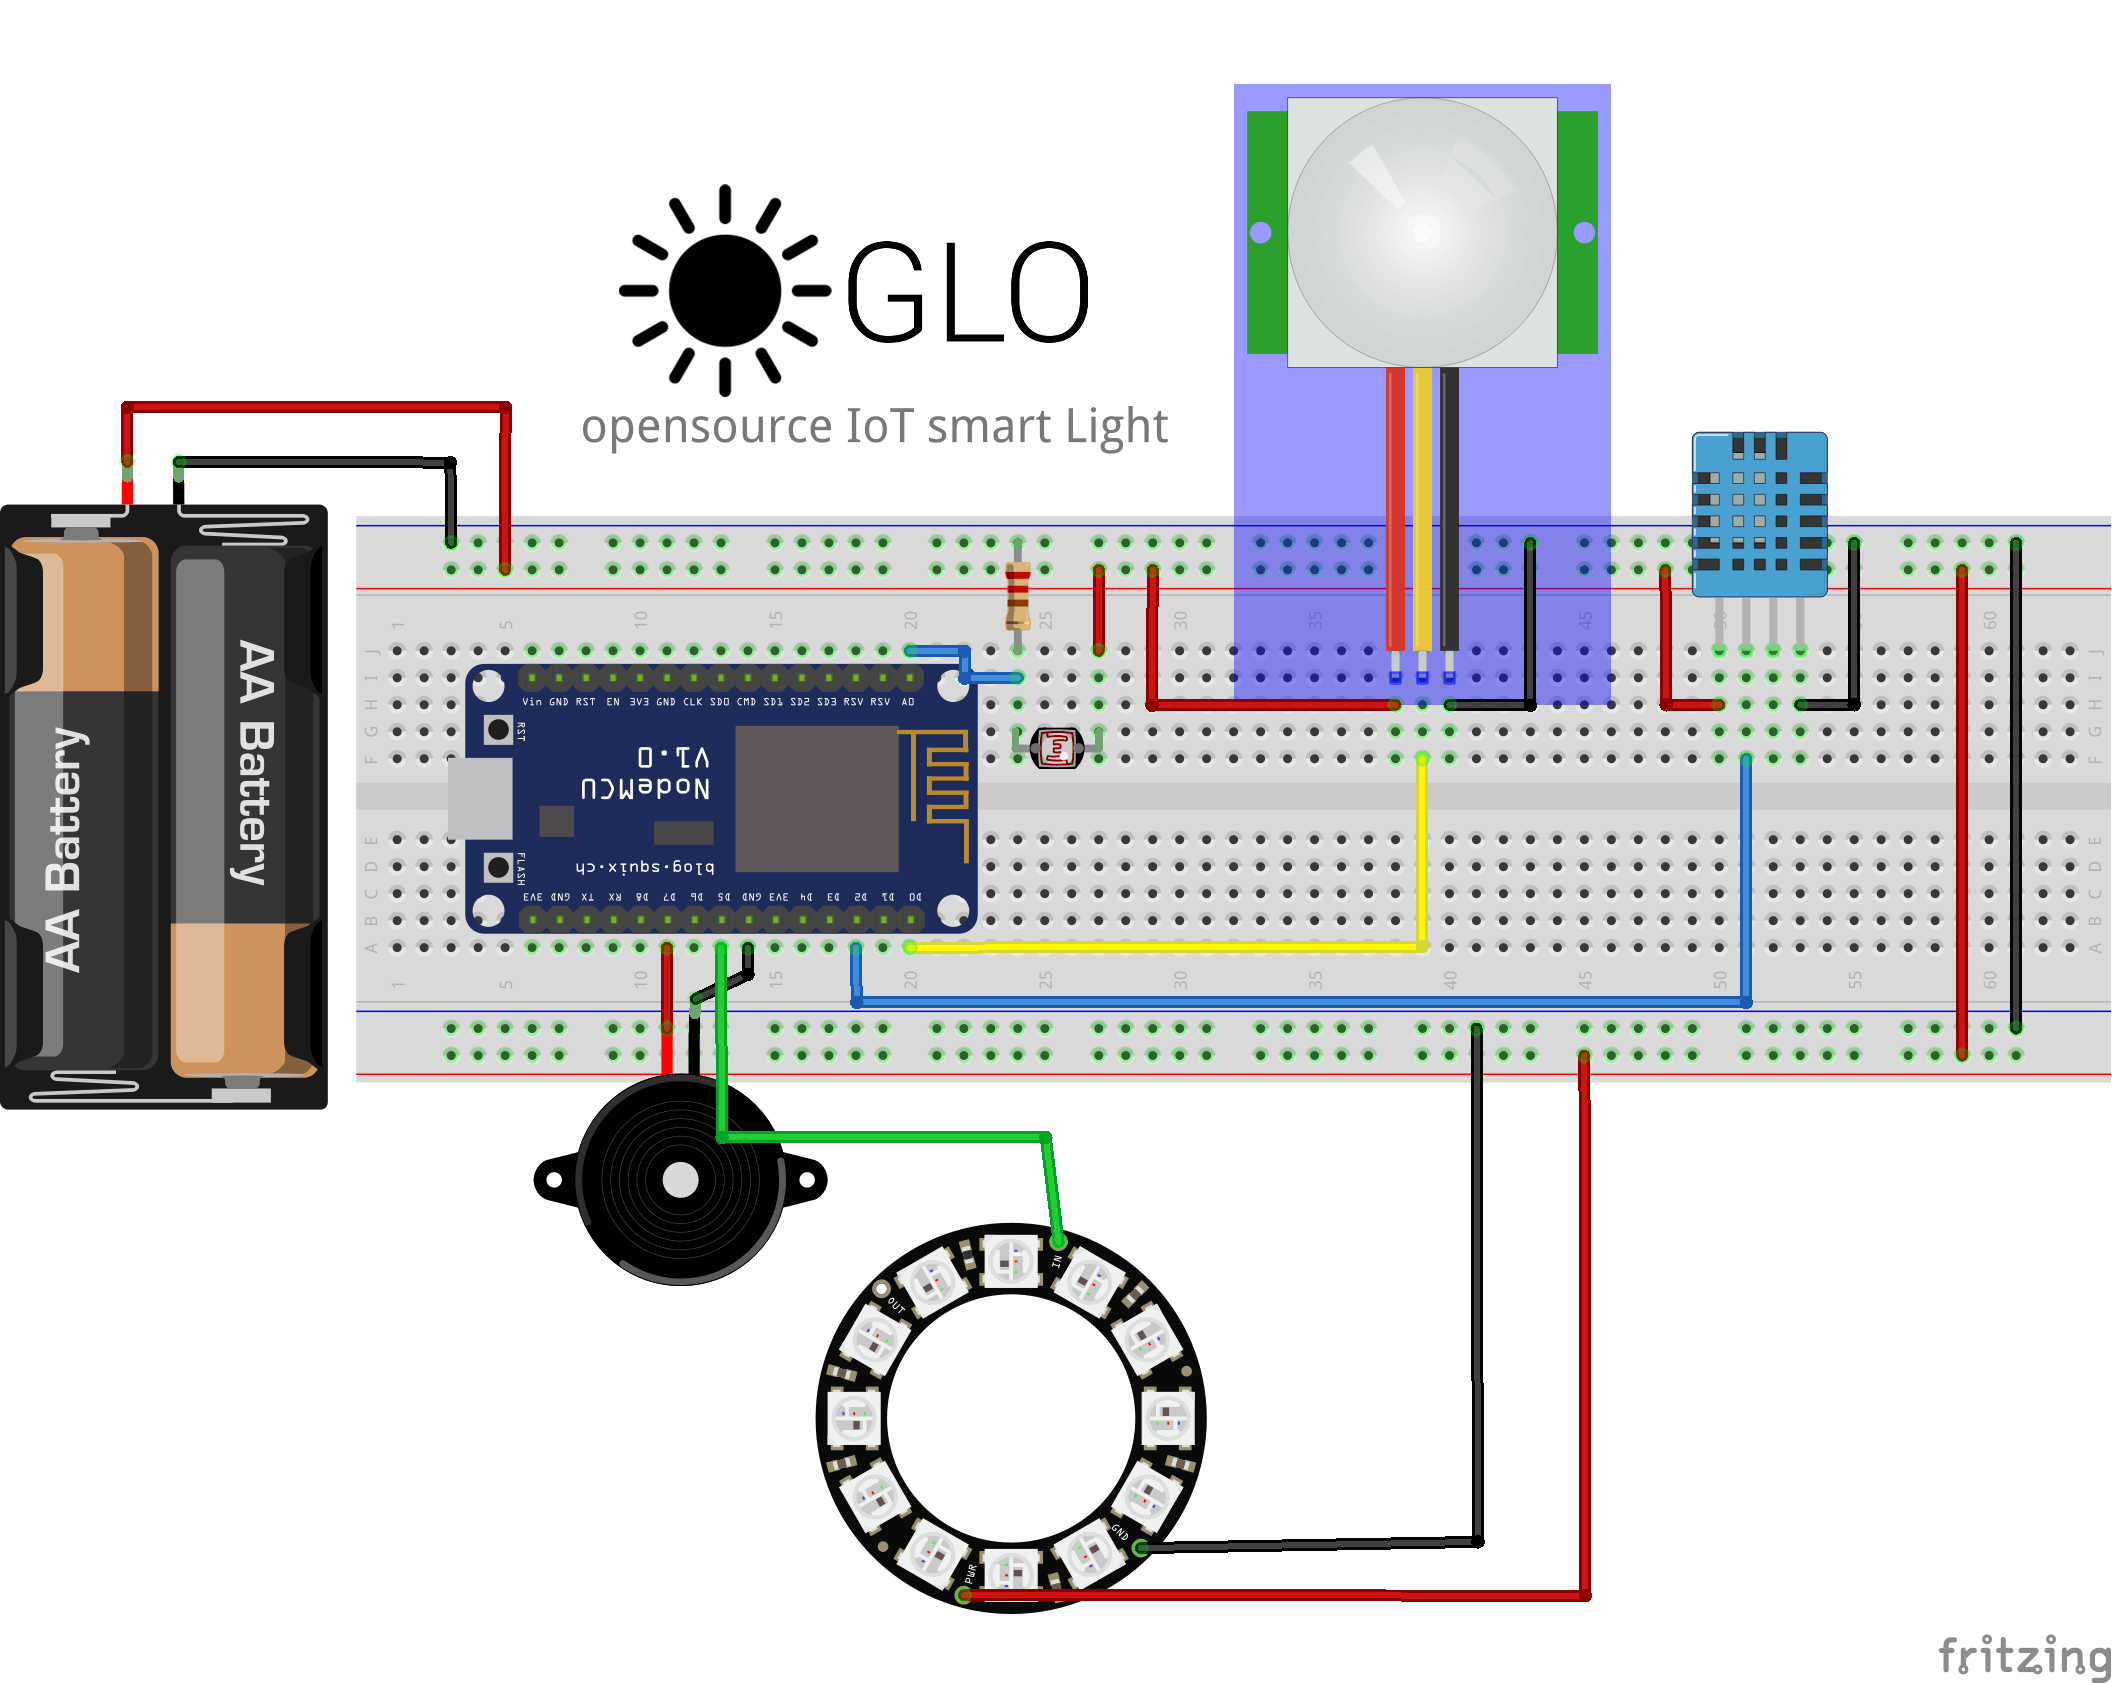 wire diagram of GLO